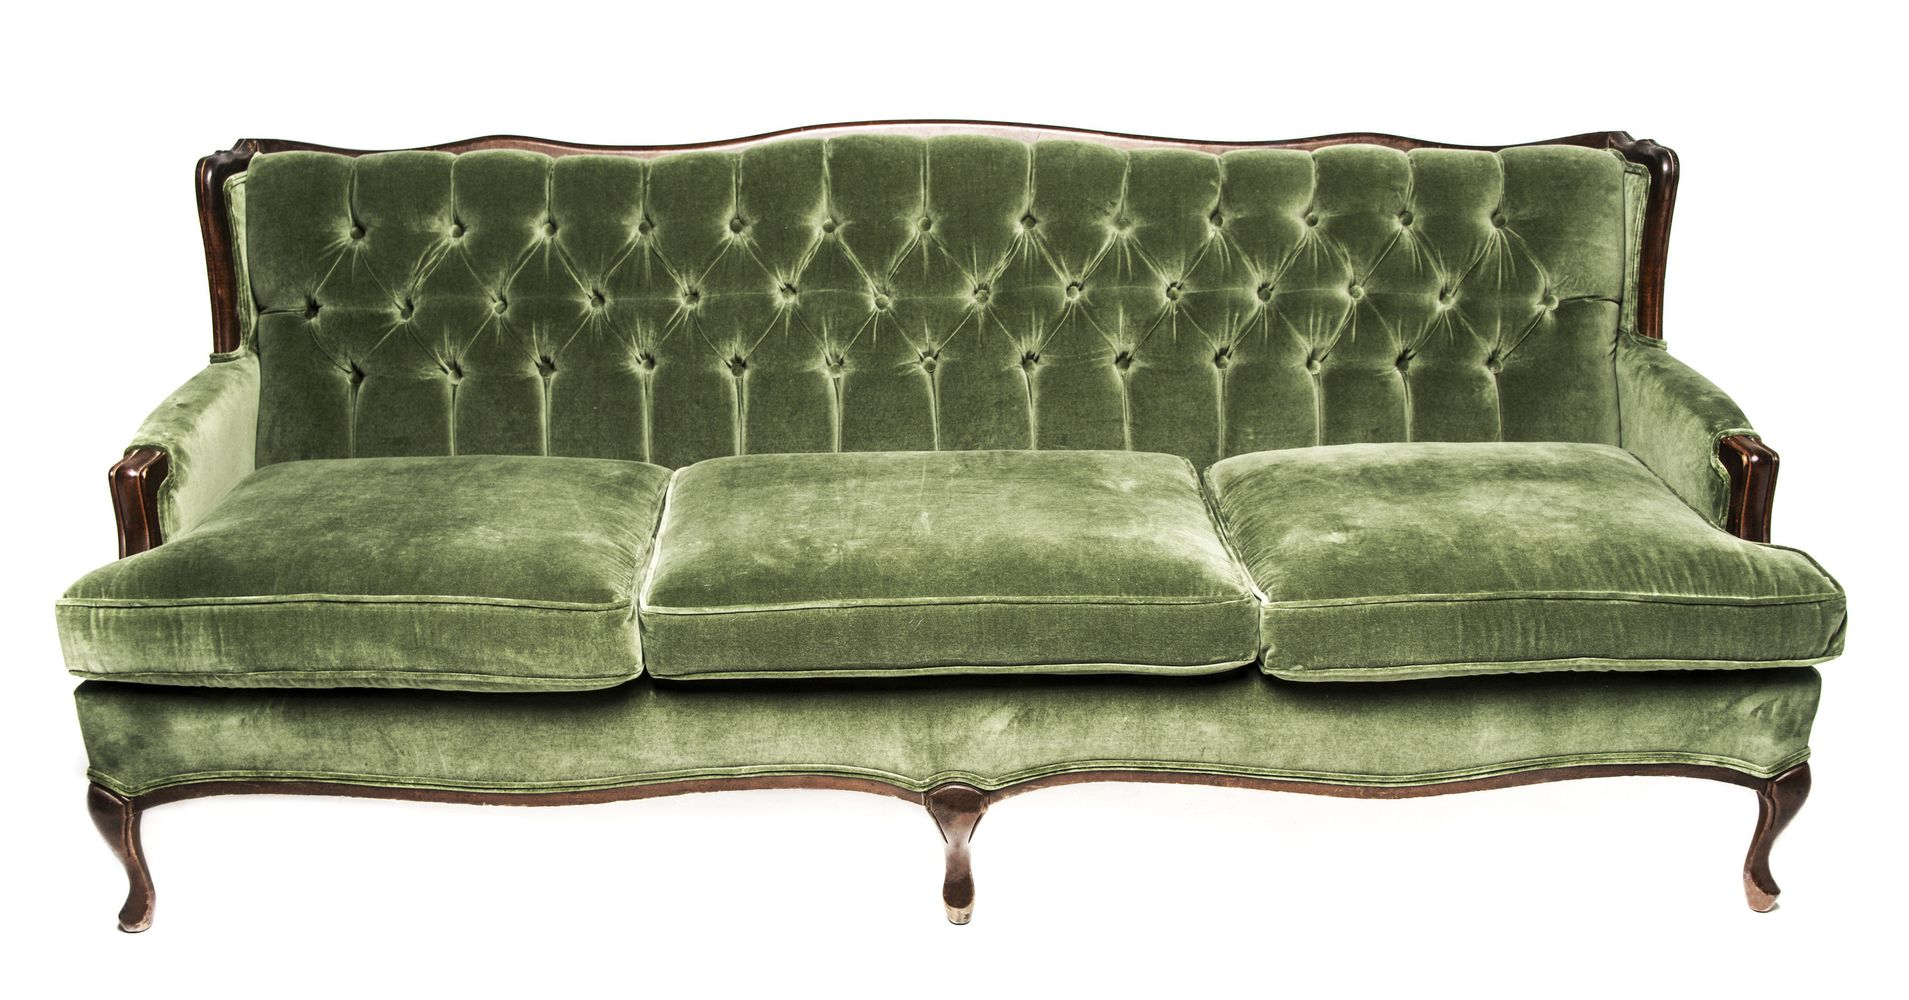 Velvet sofas thatll instantly make a room look more expensive velvet sofas thatll instantly make a room look more expensive huffpost parisarafo Choice Image